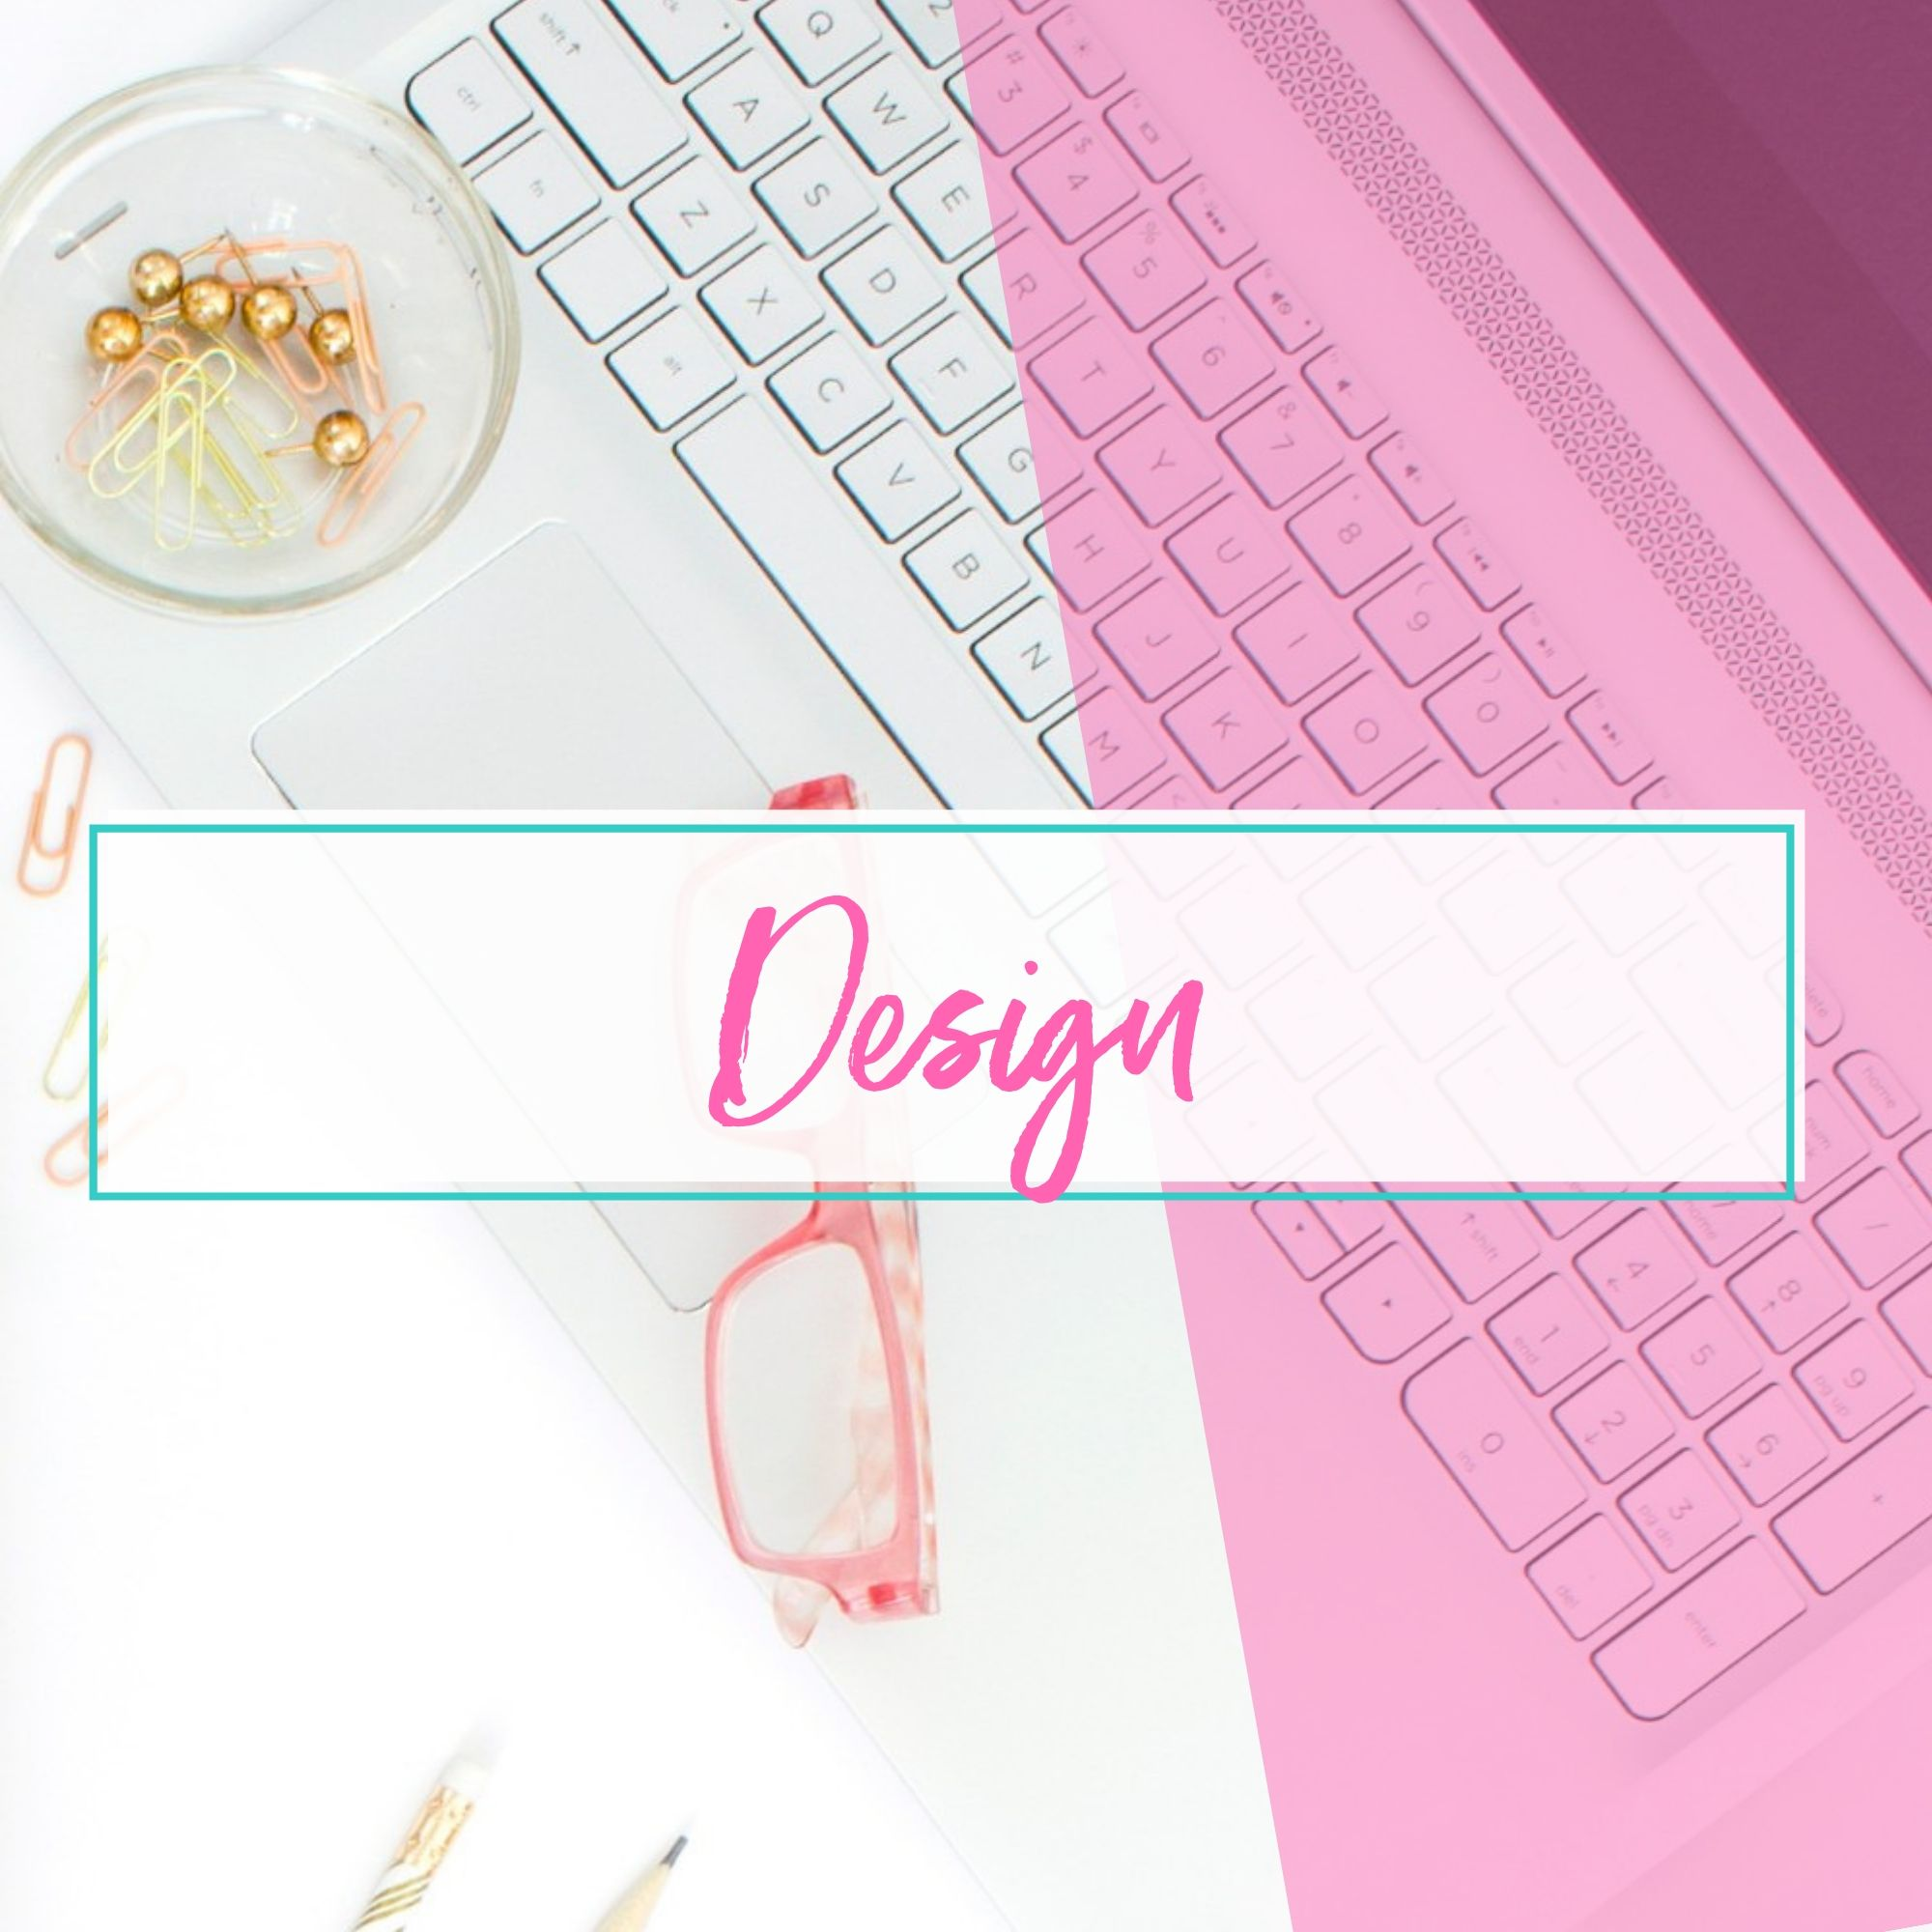 Design - sales page design, product design and branding